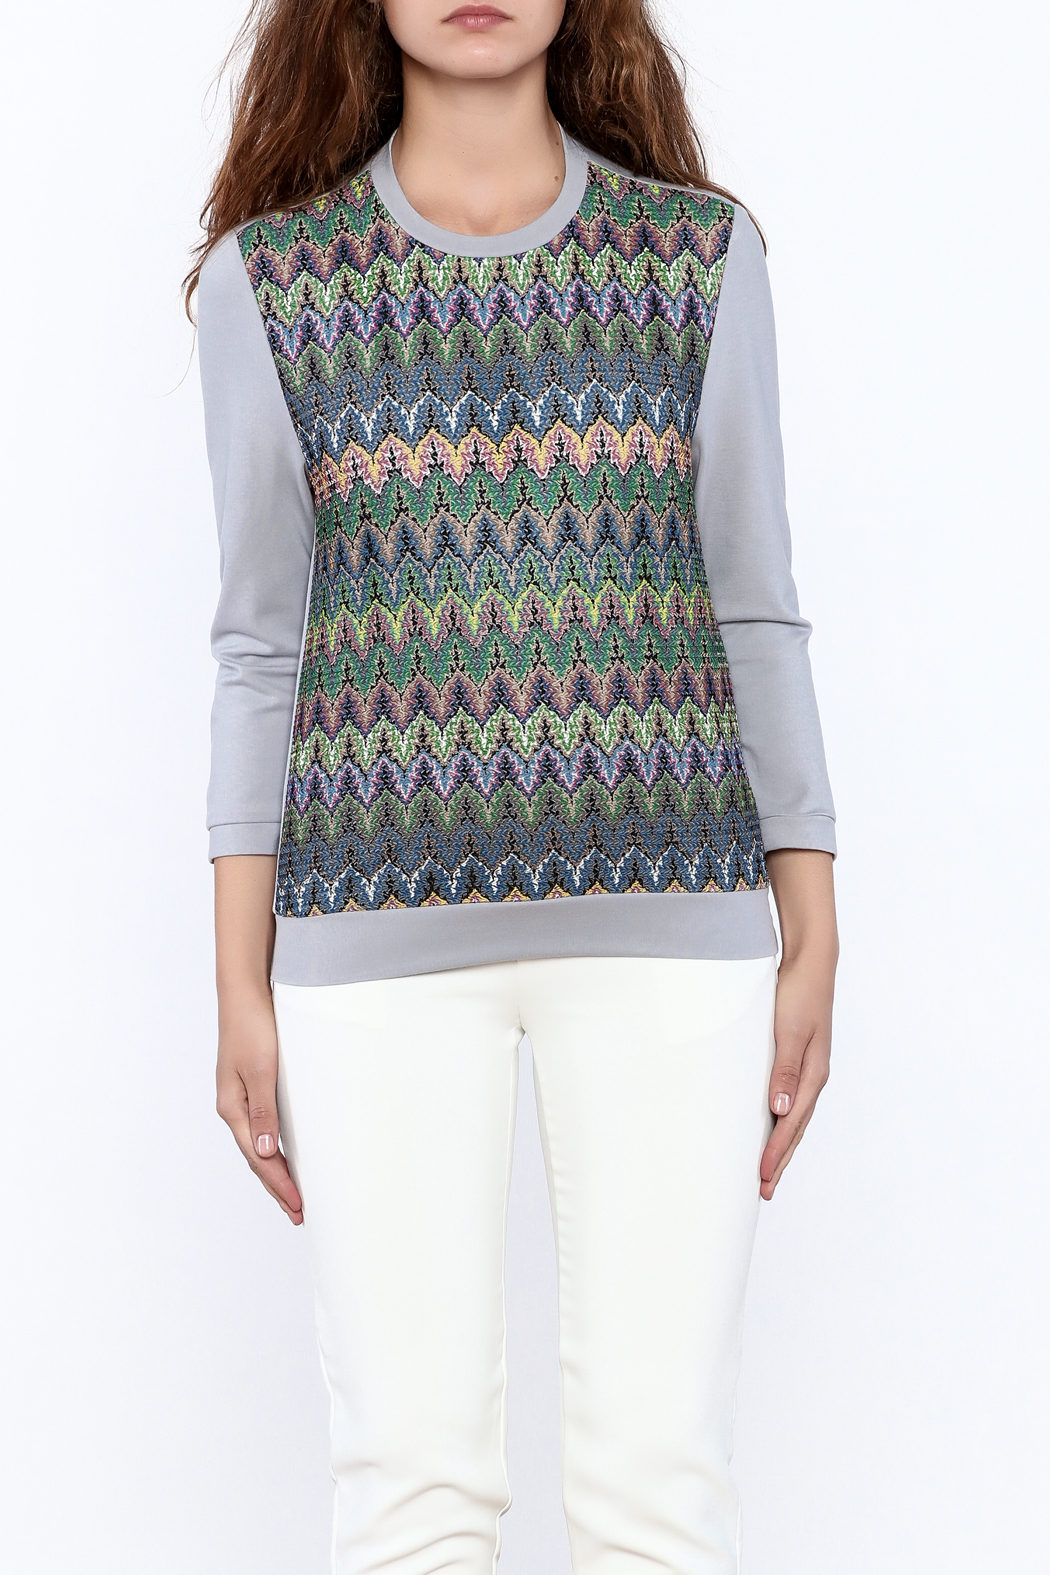 motek Grey Printed Top - Side Cropped Image